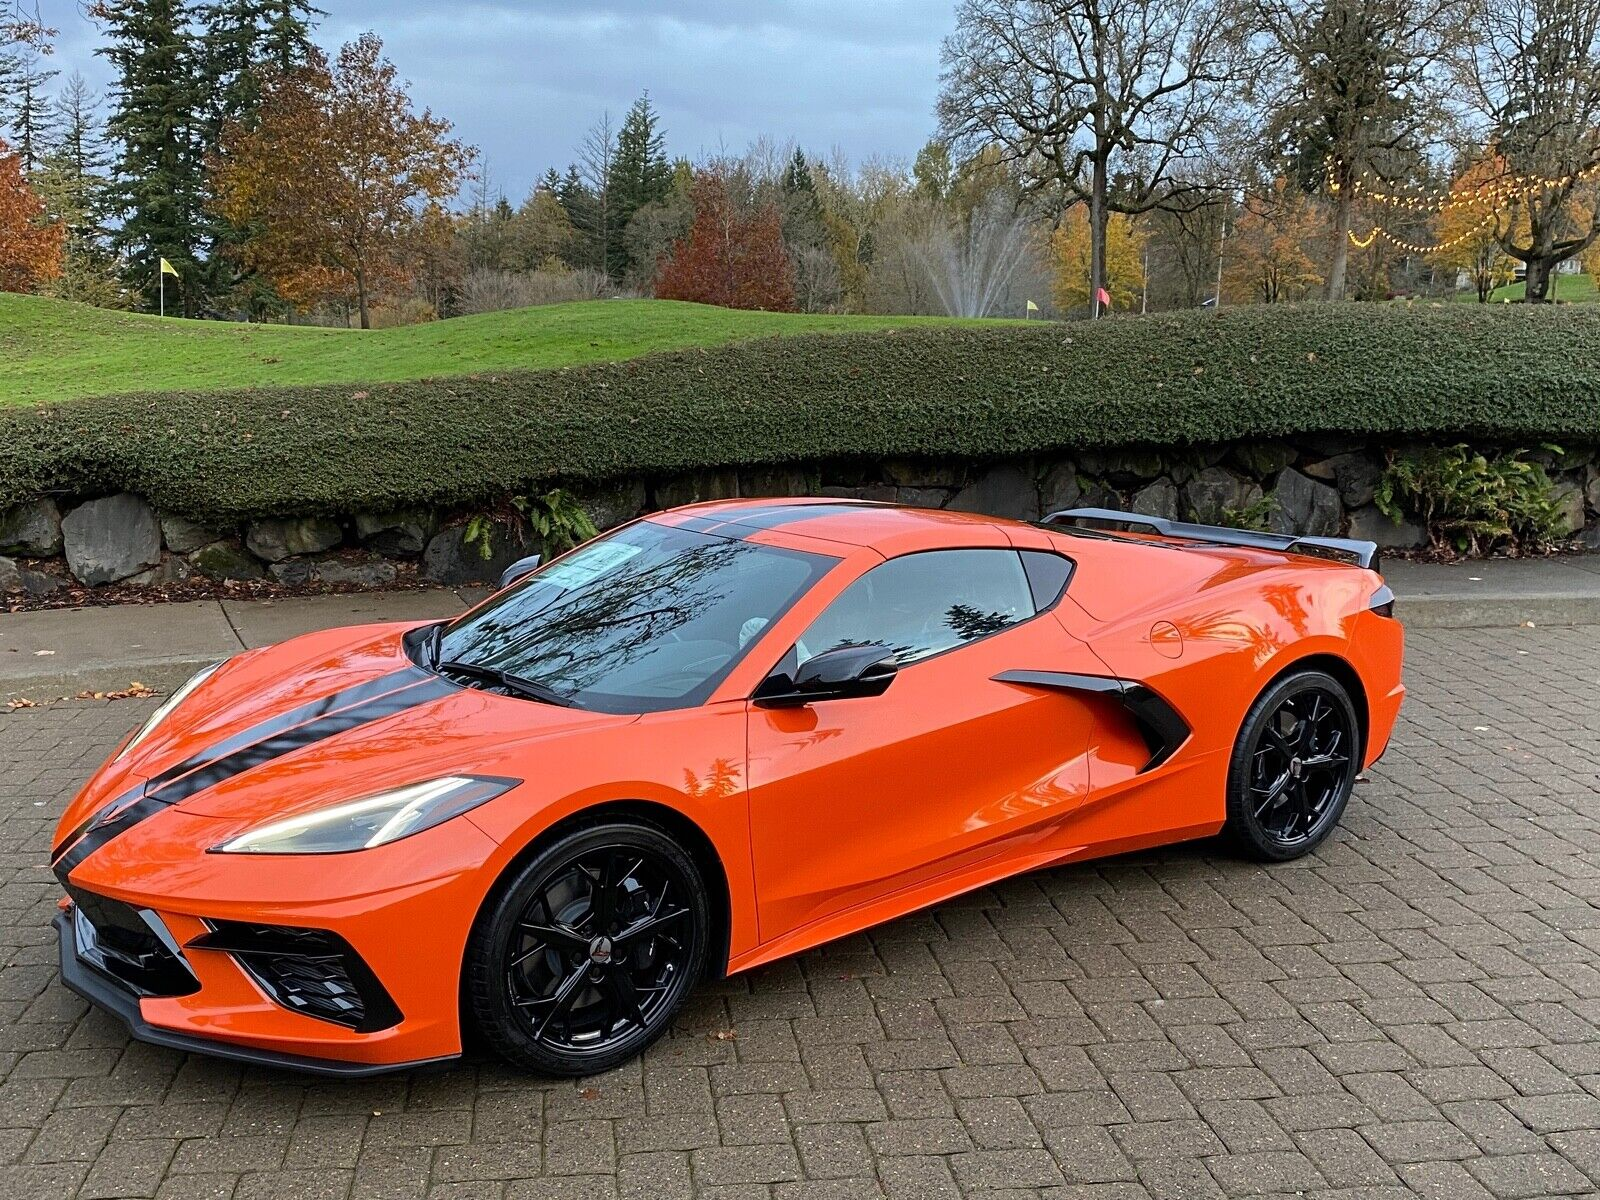 2020 Chevrolet Corvette Stingray Coupe 1LT With Only 10 Miles